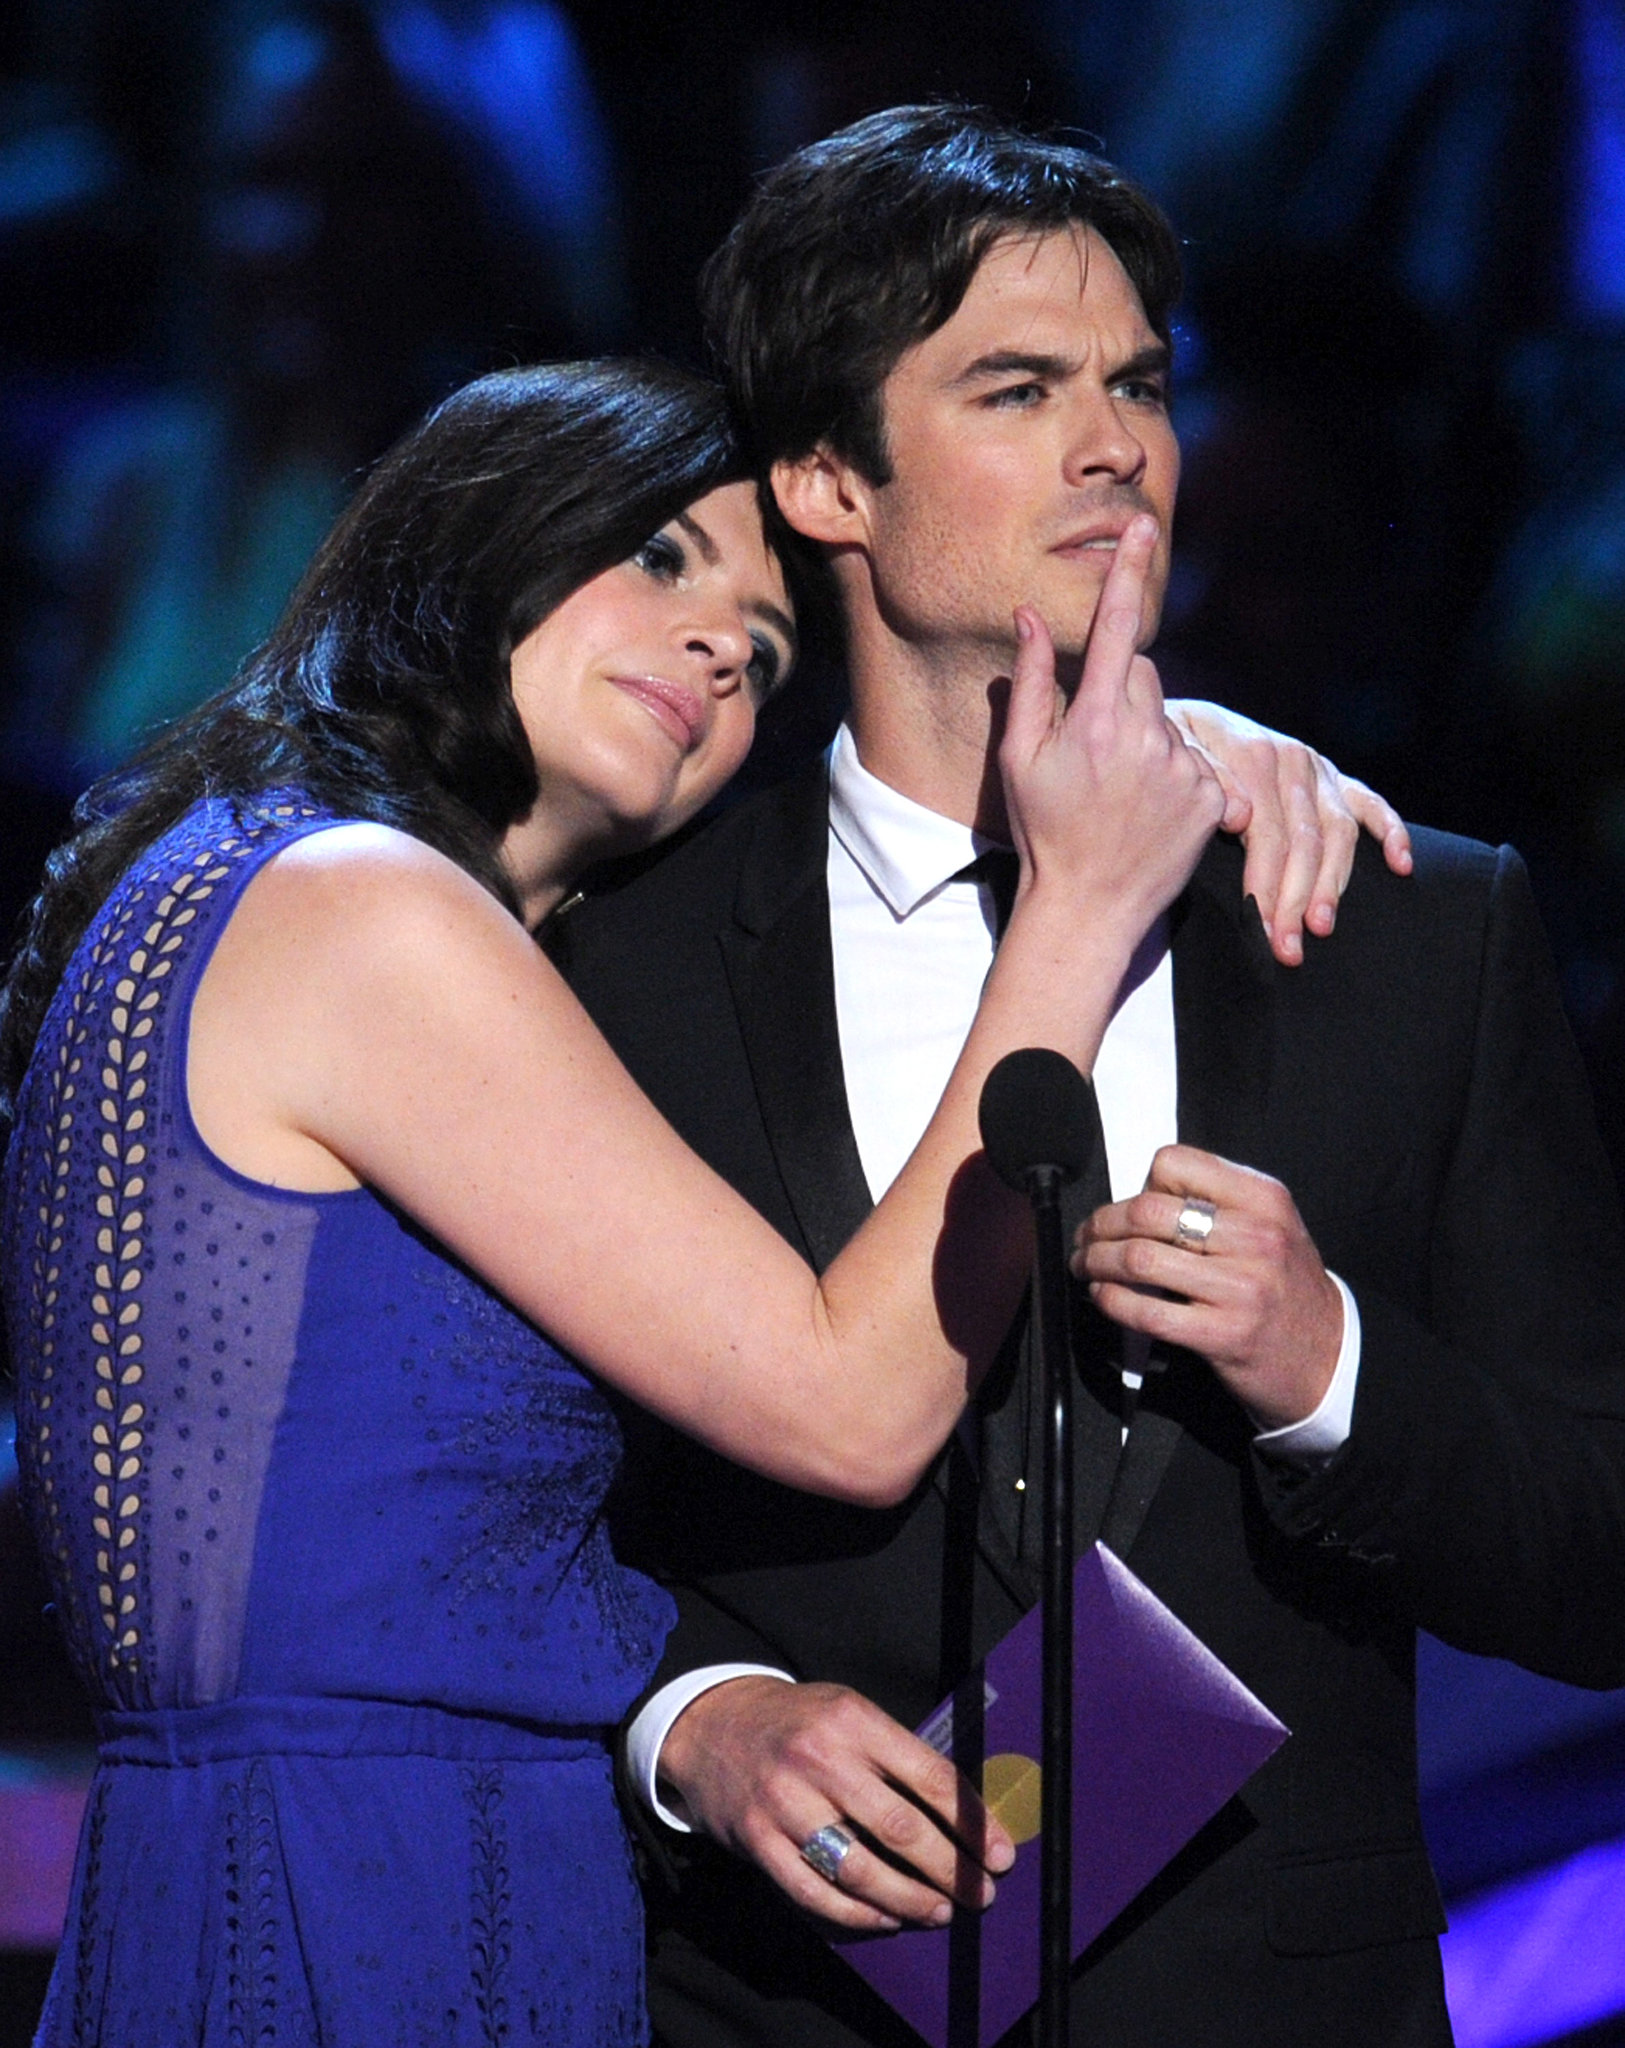 Casey Wilson joked around with Ian Somerhalder when they presented together at the People's Choice Awards.